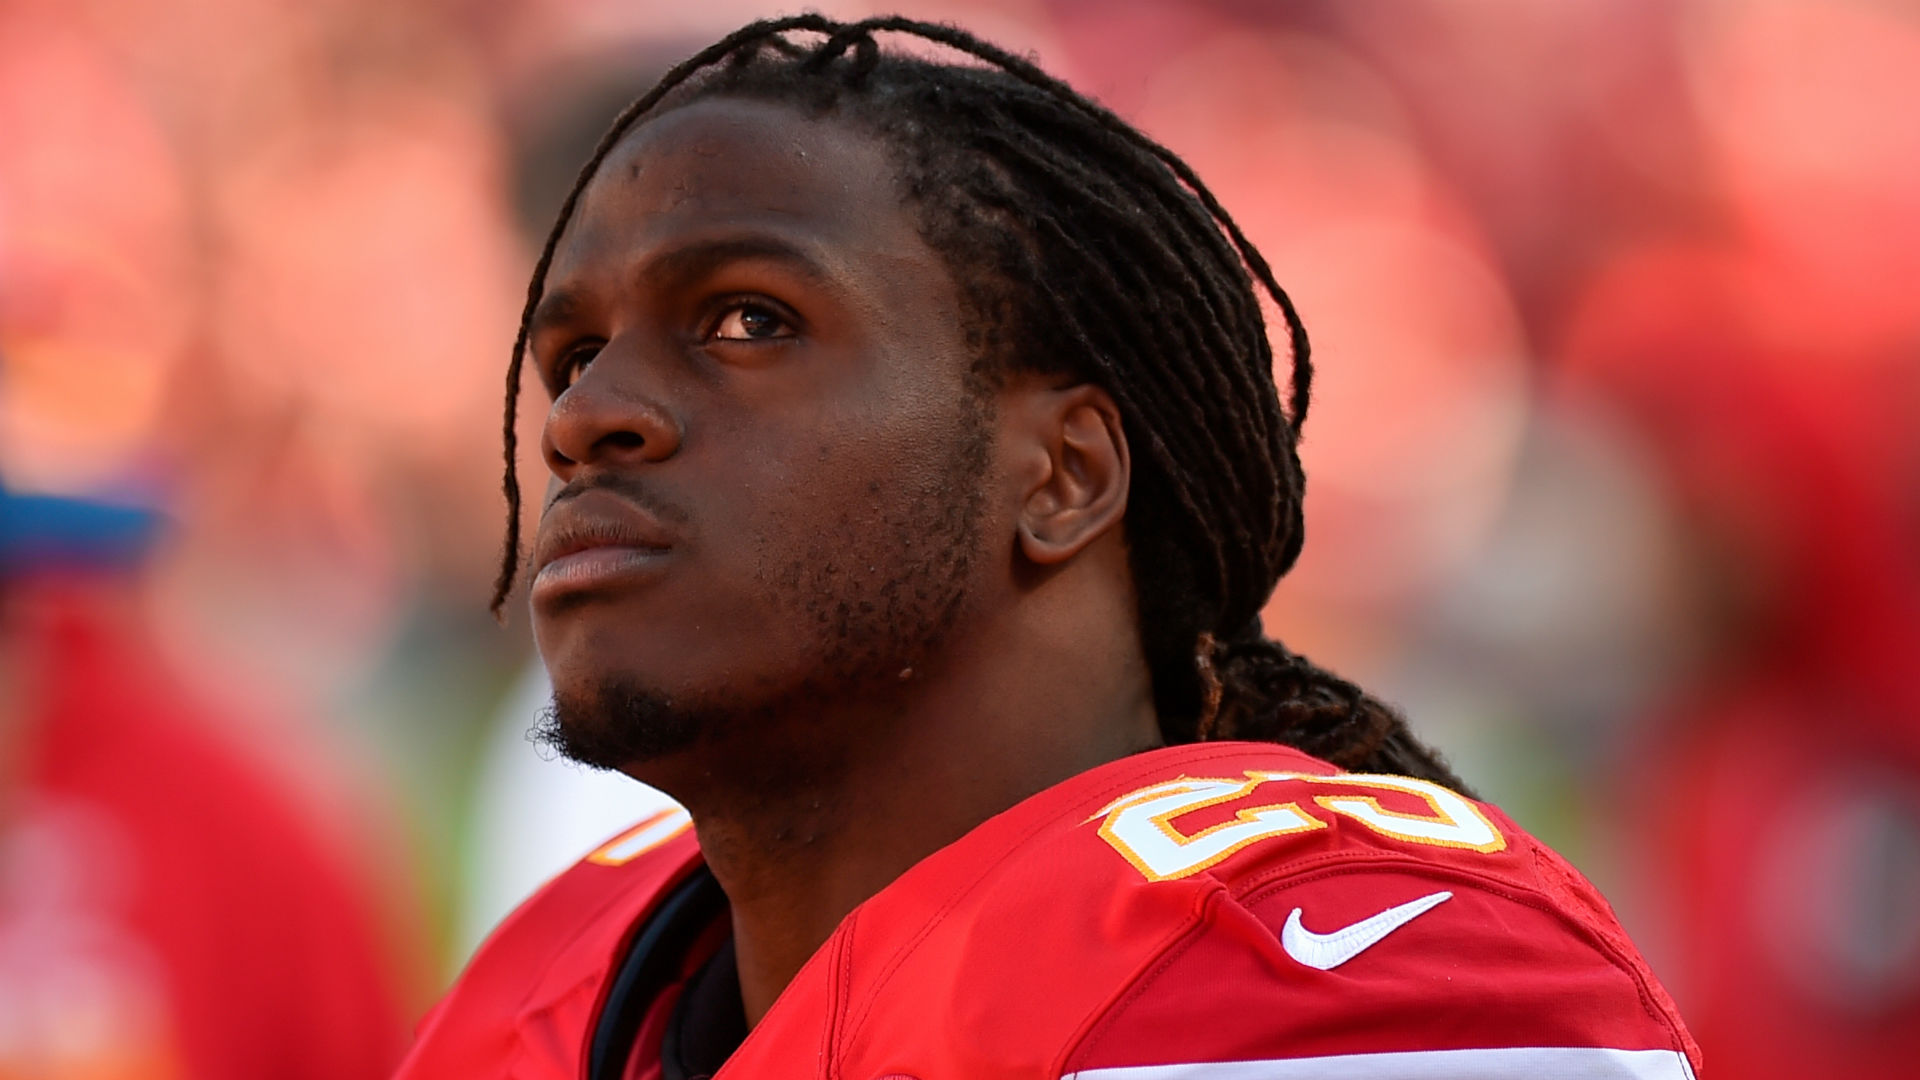 Jamaal Charles signs one-day contract with Chiefs before retiring